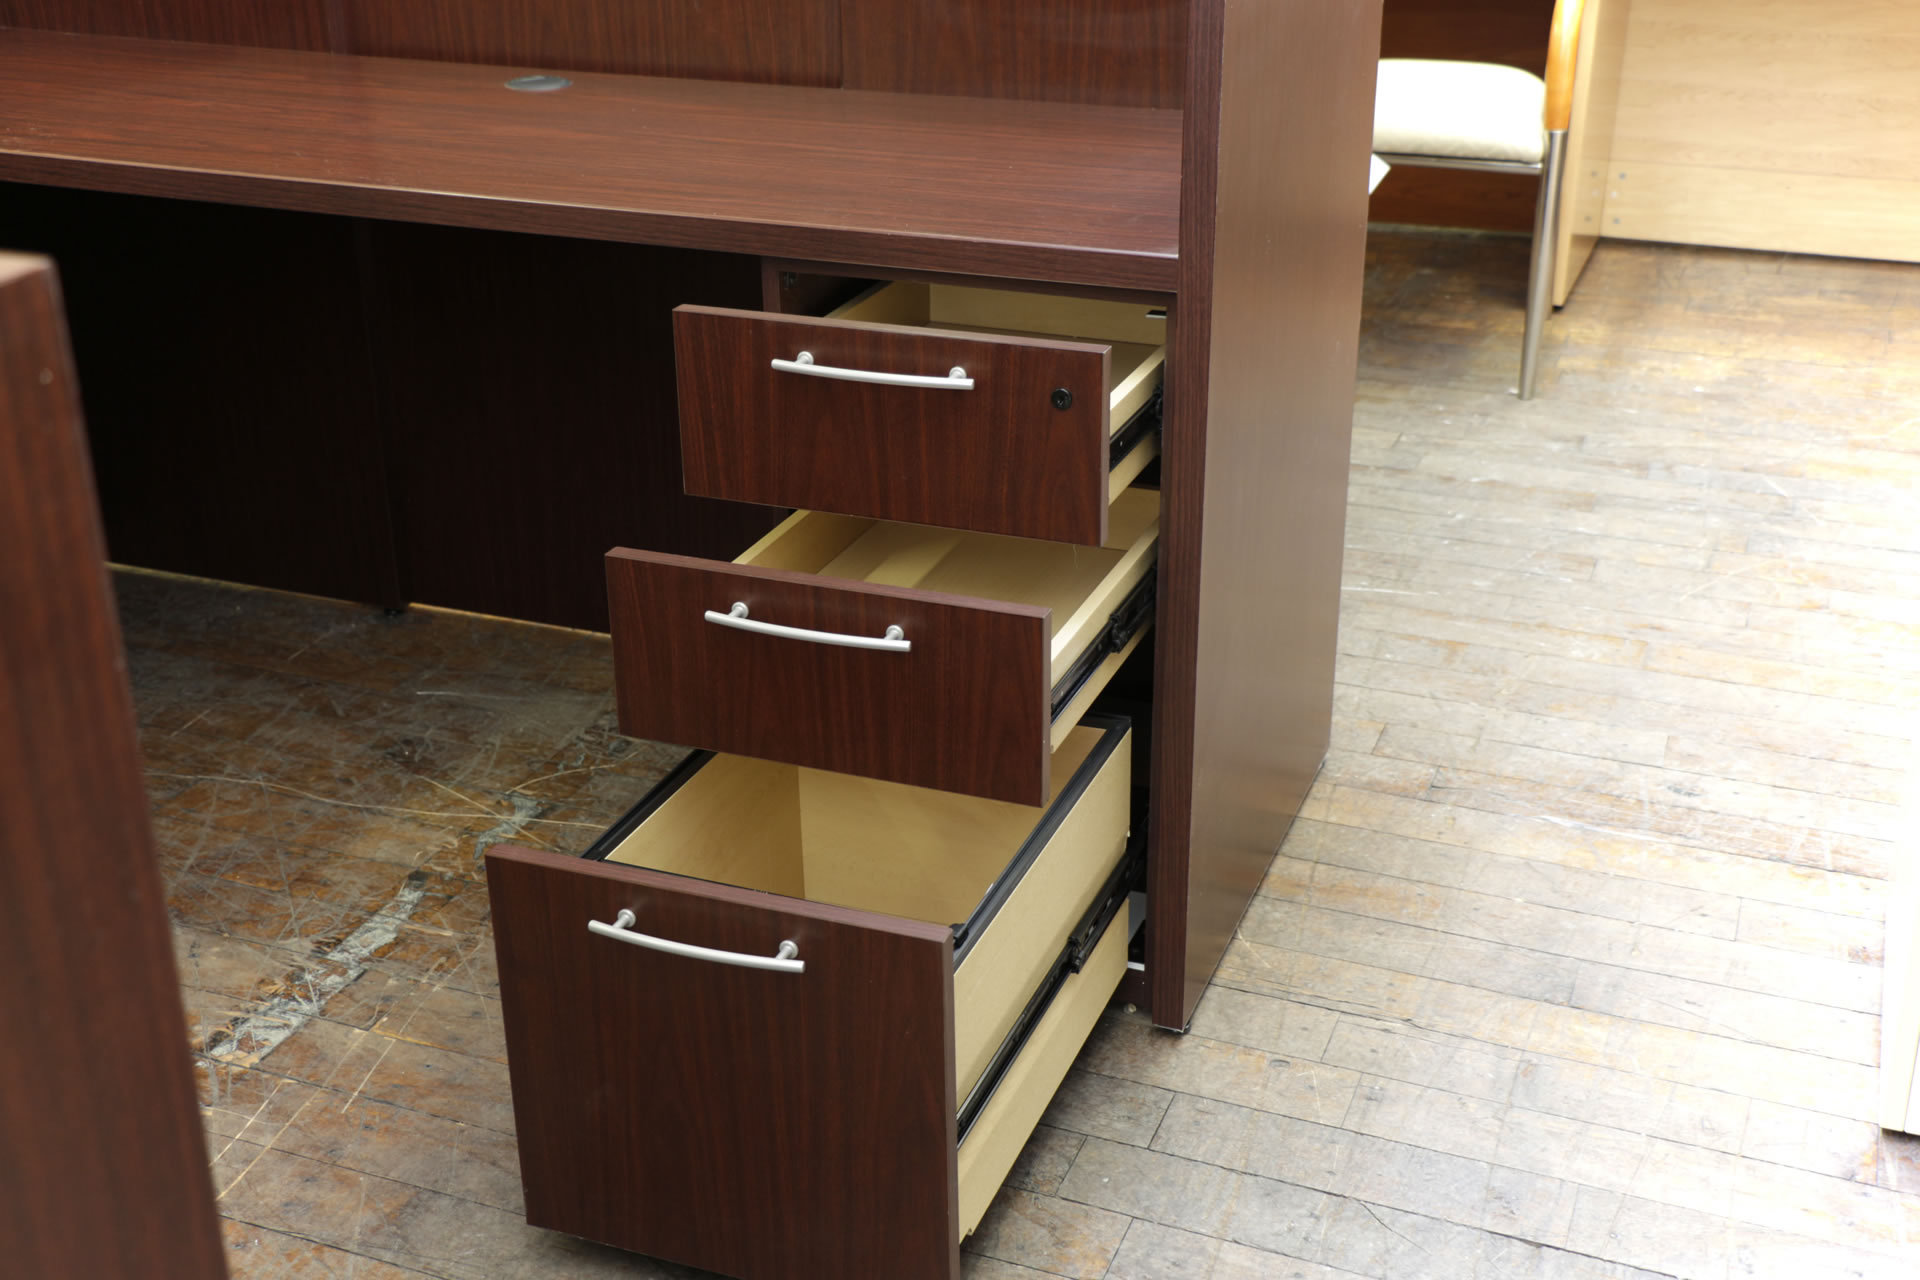 peartreeofficefurniture_peartreeofficefurniture_mg_5331.jpg